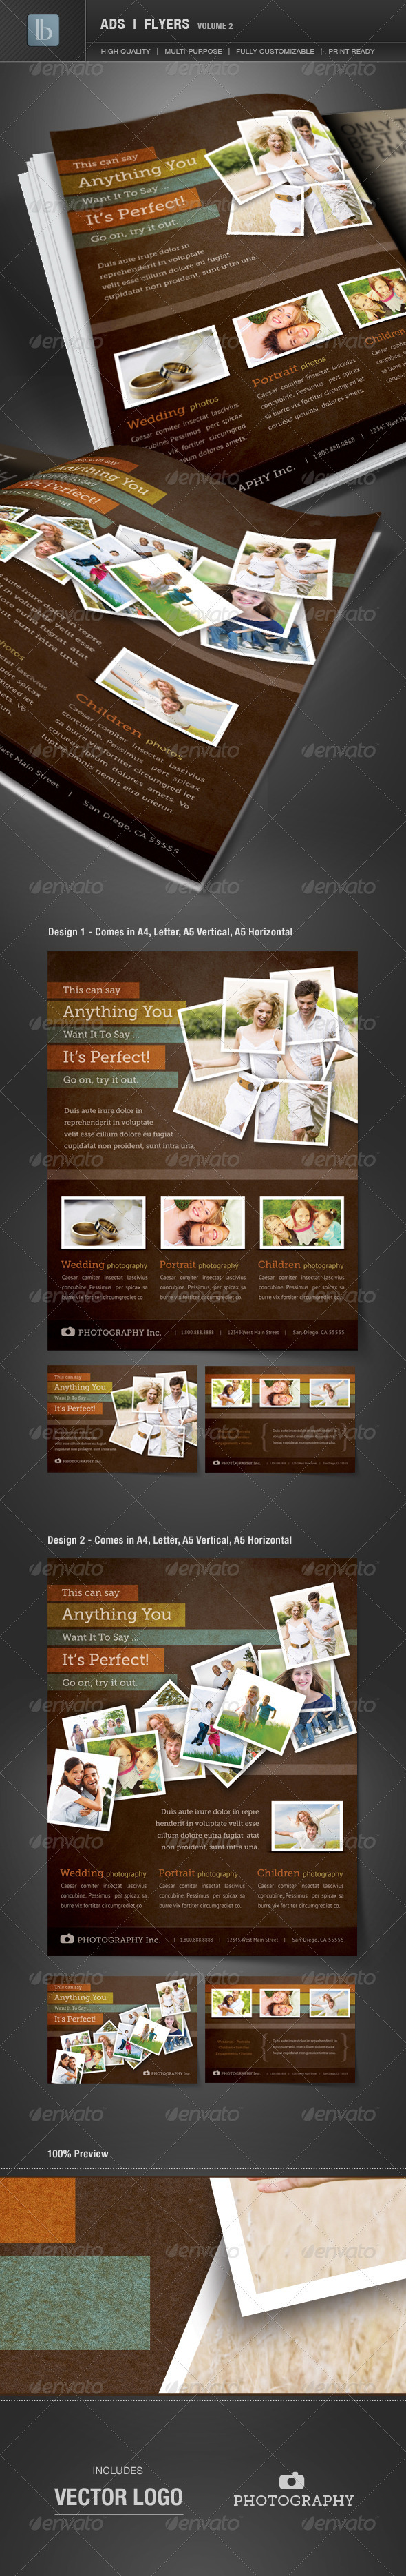 GraphicRiver Ads Business Flyers Volume 2 1363853